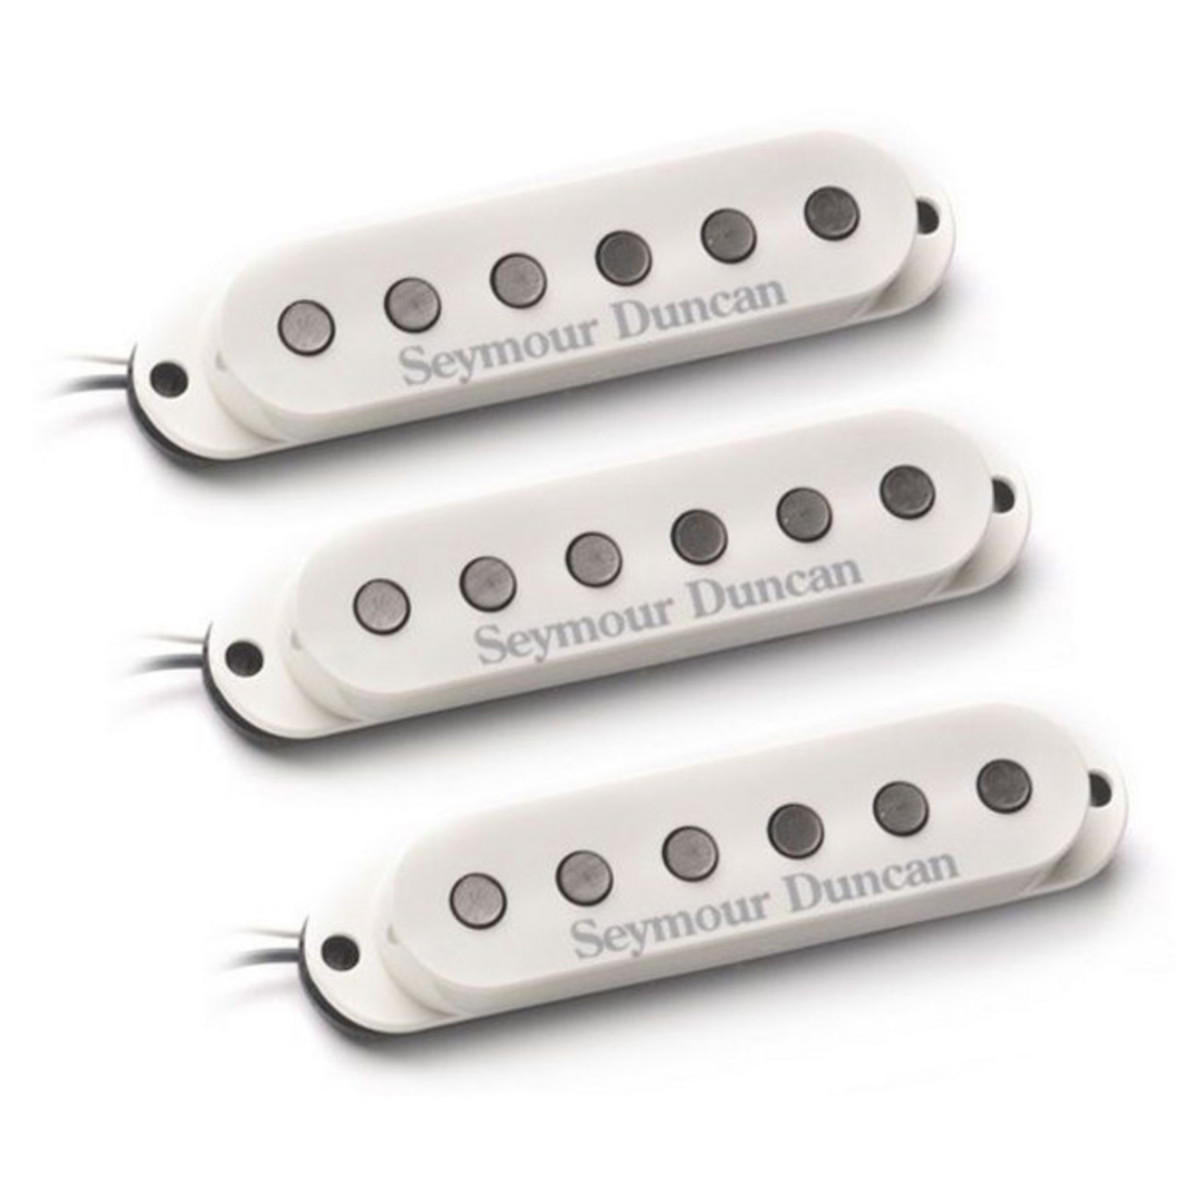 Seymour Duncan Ssl 5 Custom Staggered Strat Calibrated Set Left Hand